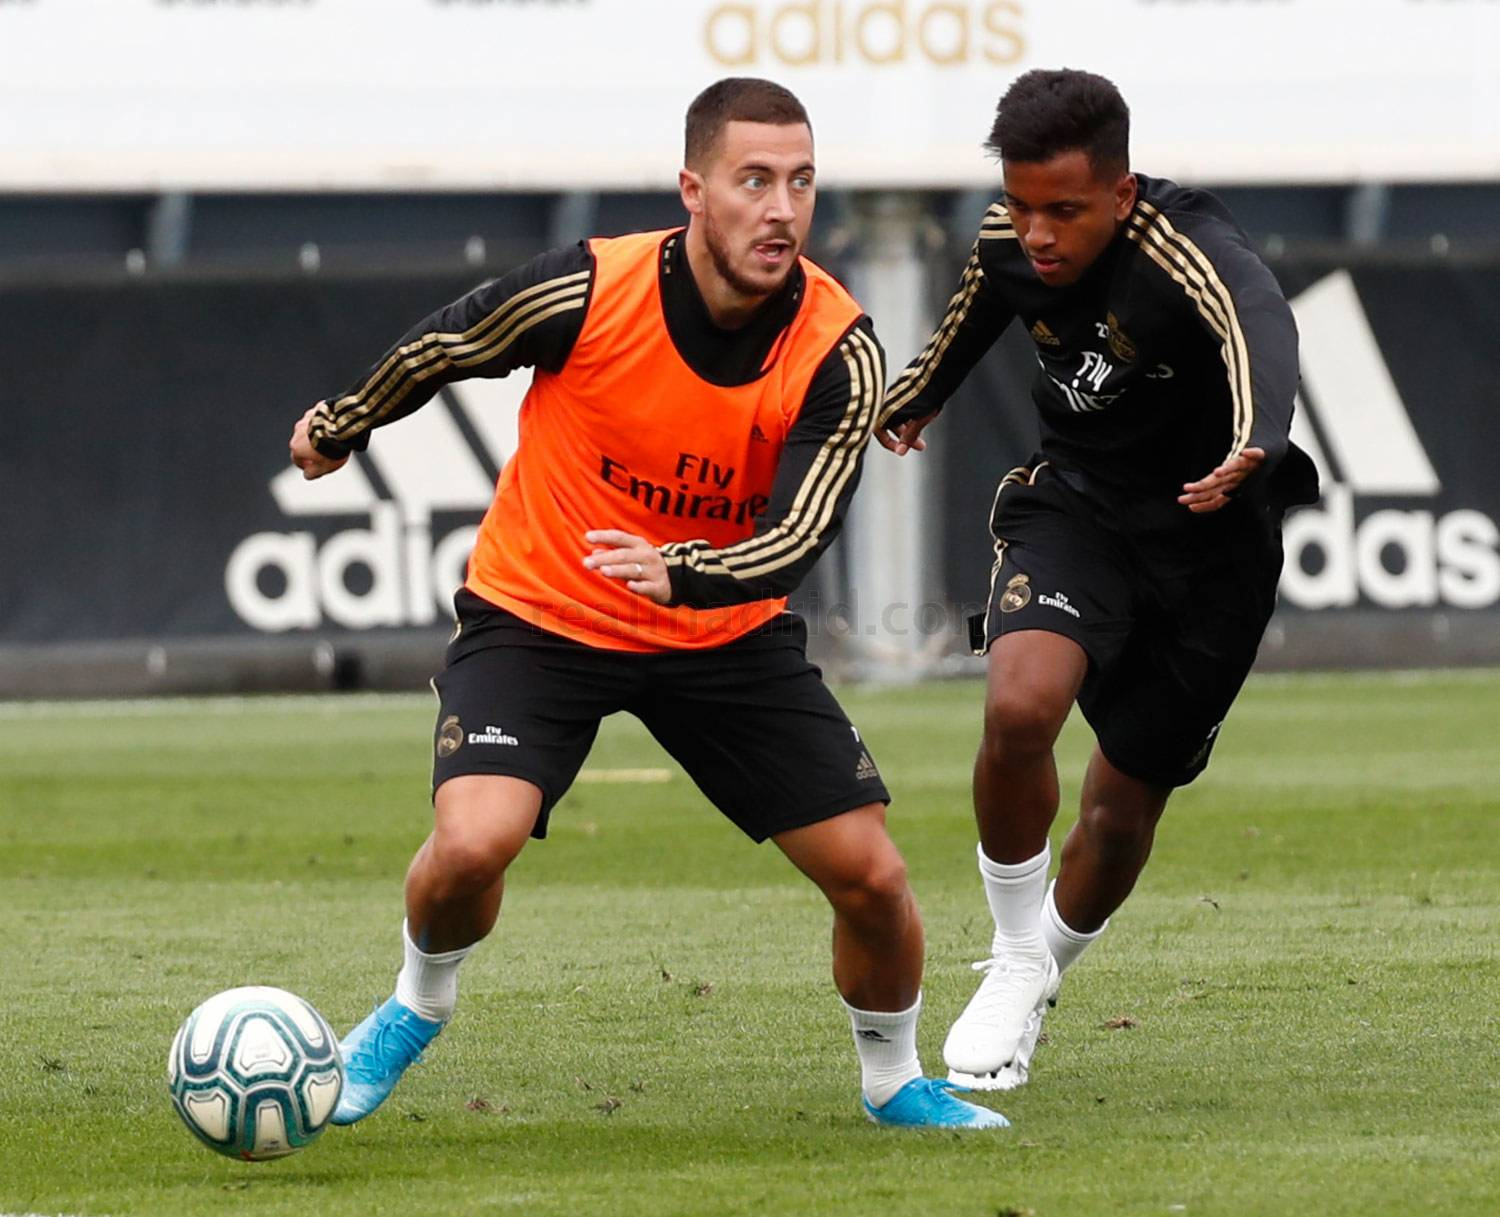 Real Madrid - Entrenamiento del Real Madrid  - 17-10-2019